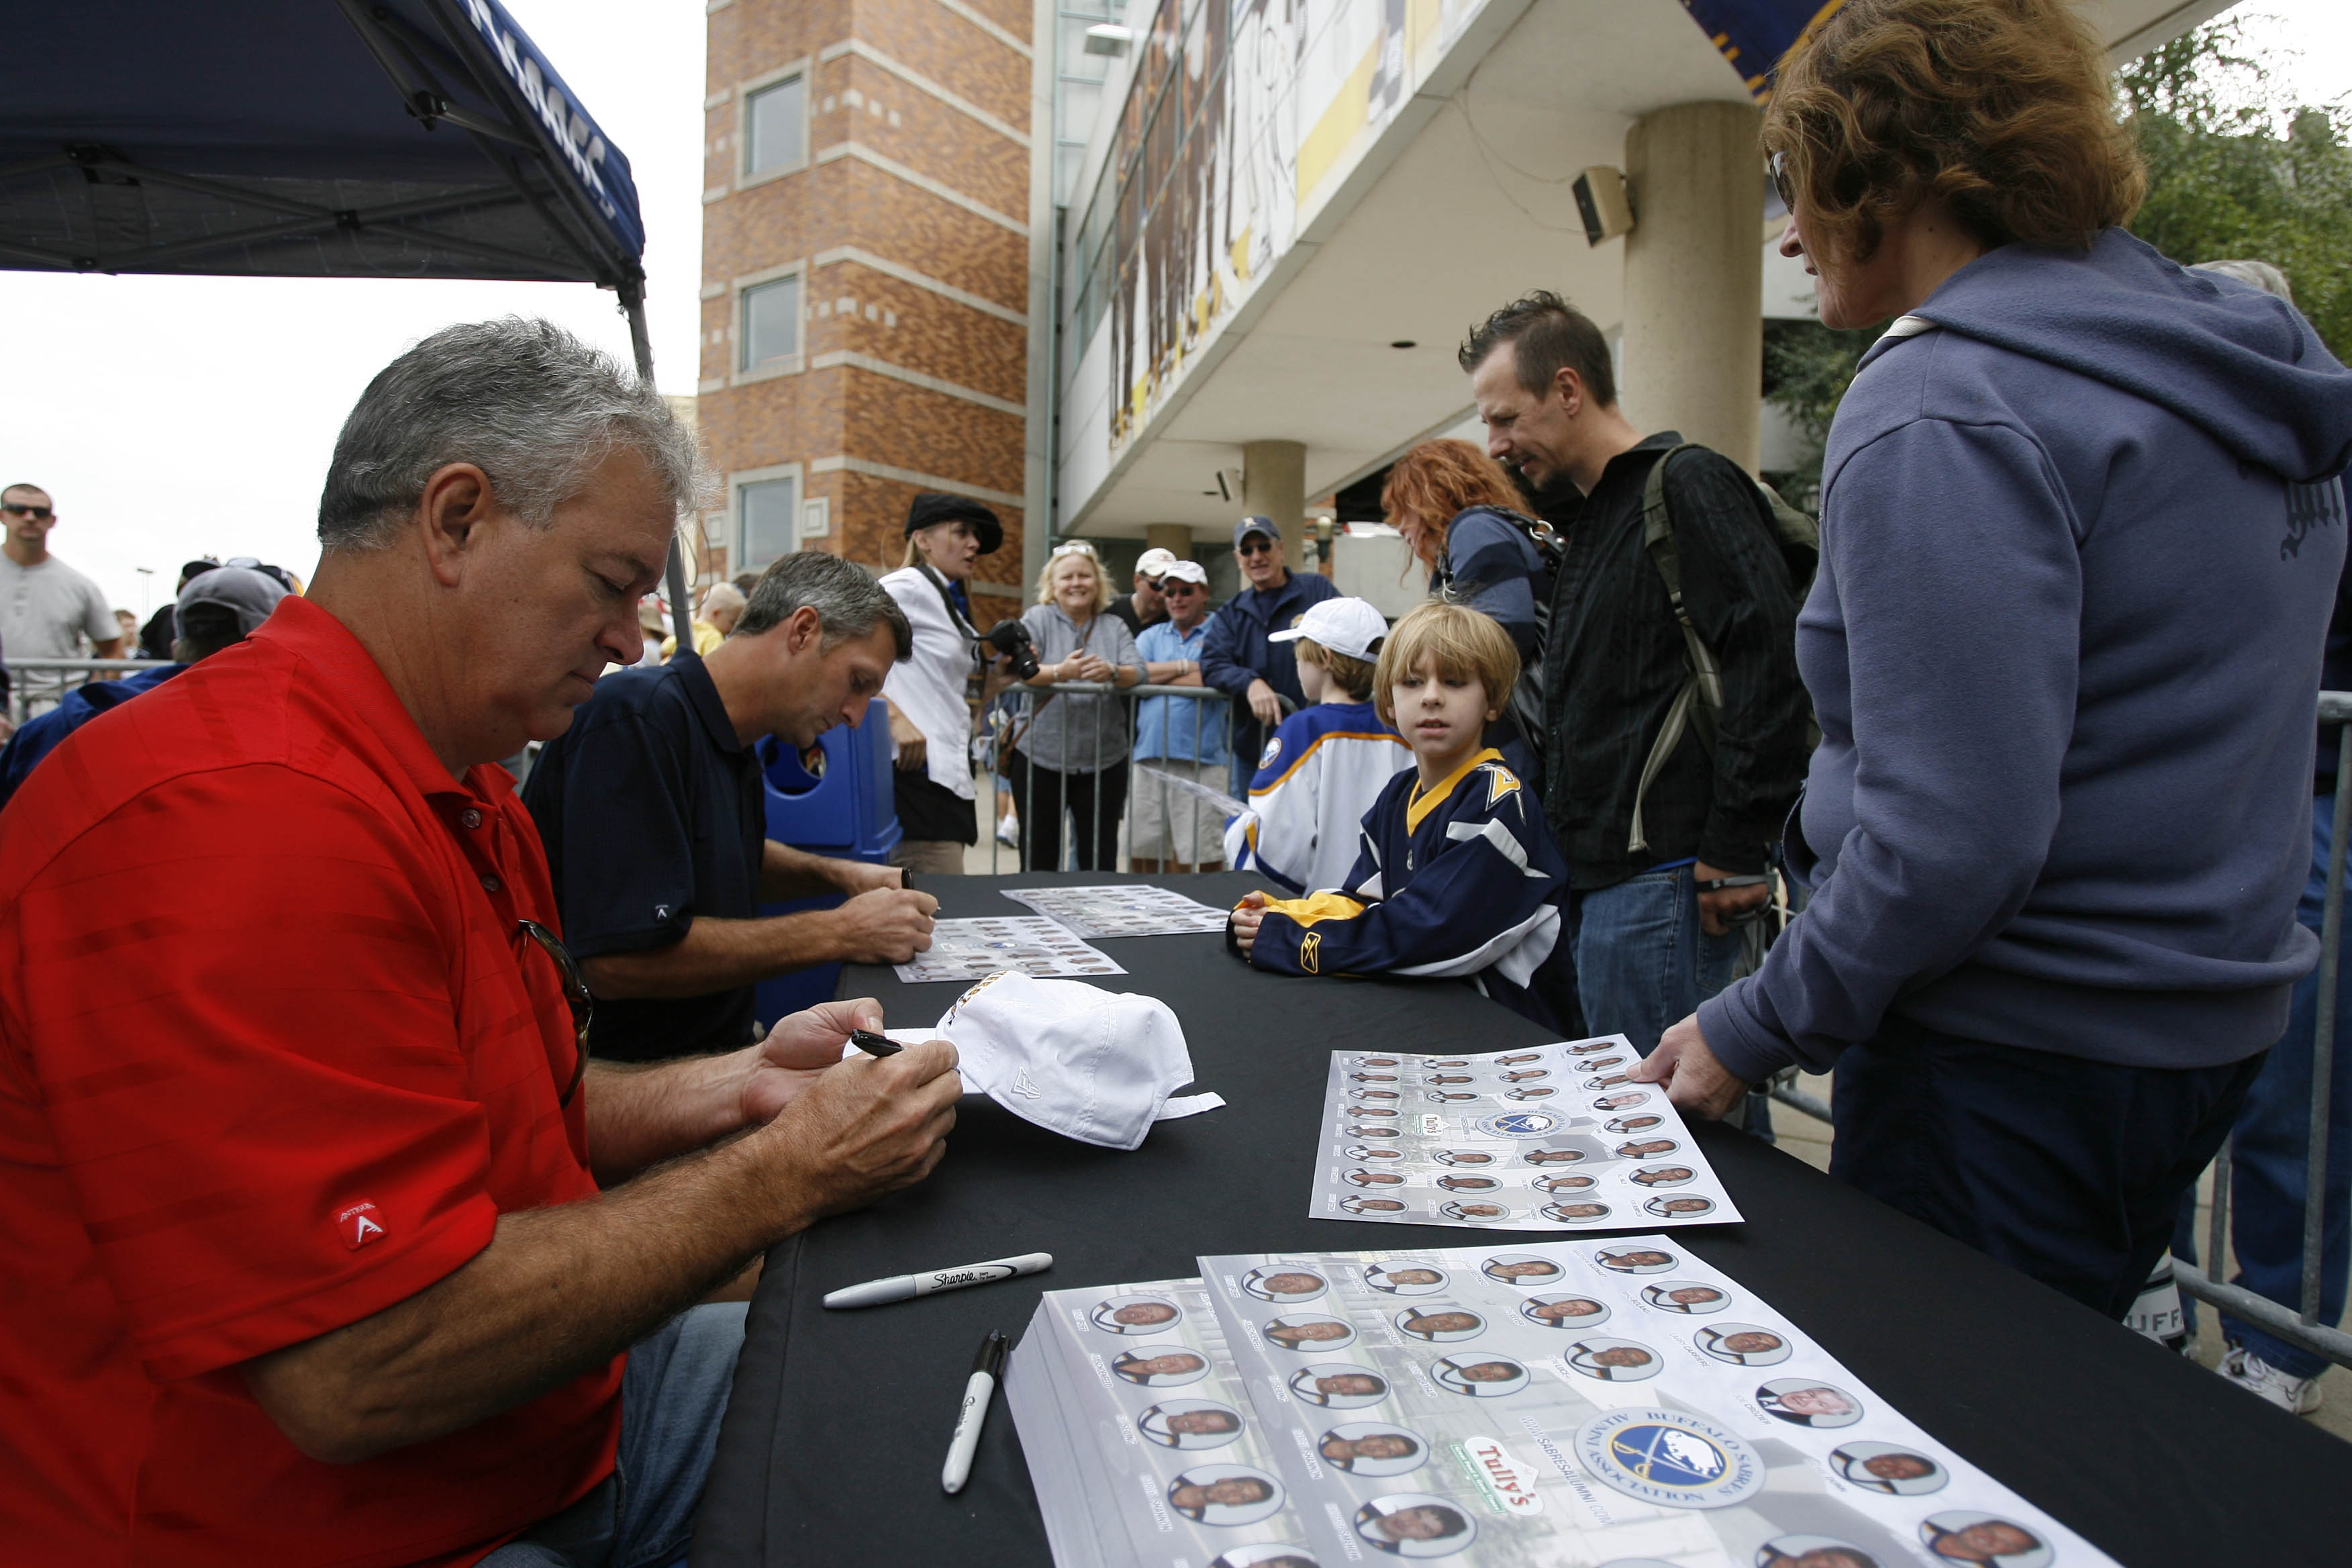 Sabres' Alumni Richie Dunn, left, and Darryl Shannon sign autographs for fans during Puck Drop 2010 at the HSBC Arena.